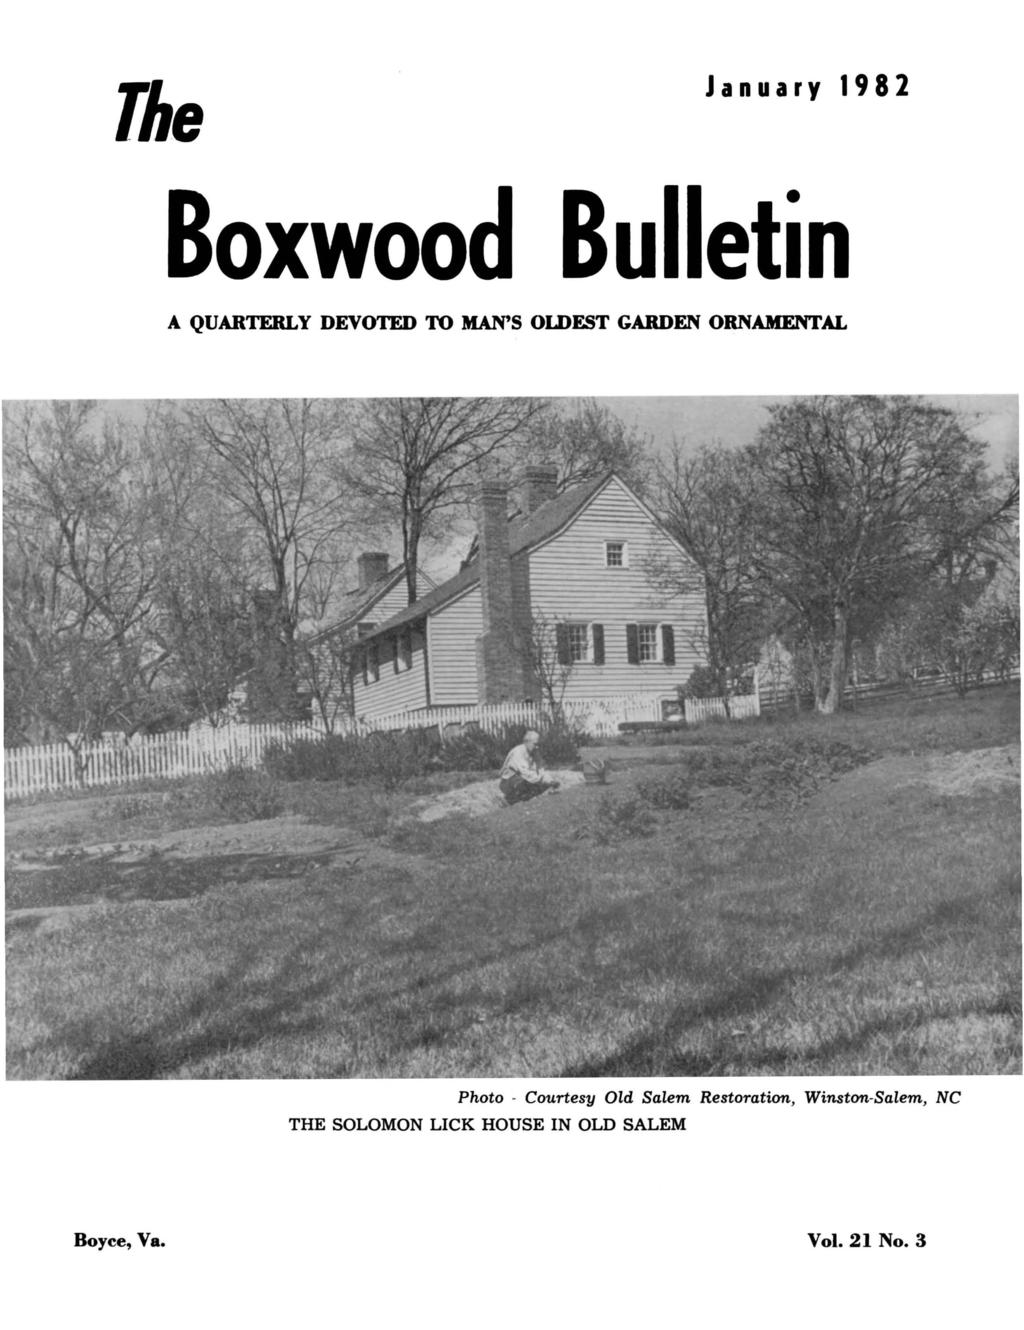 The January 1982 Boxwood Bulletin A QUARTERLY DEVOTED TO MAN'S OLDEST GARDEN ORNAMENTAL Photo -